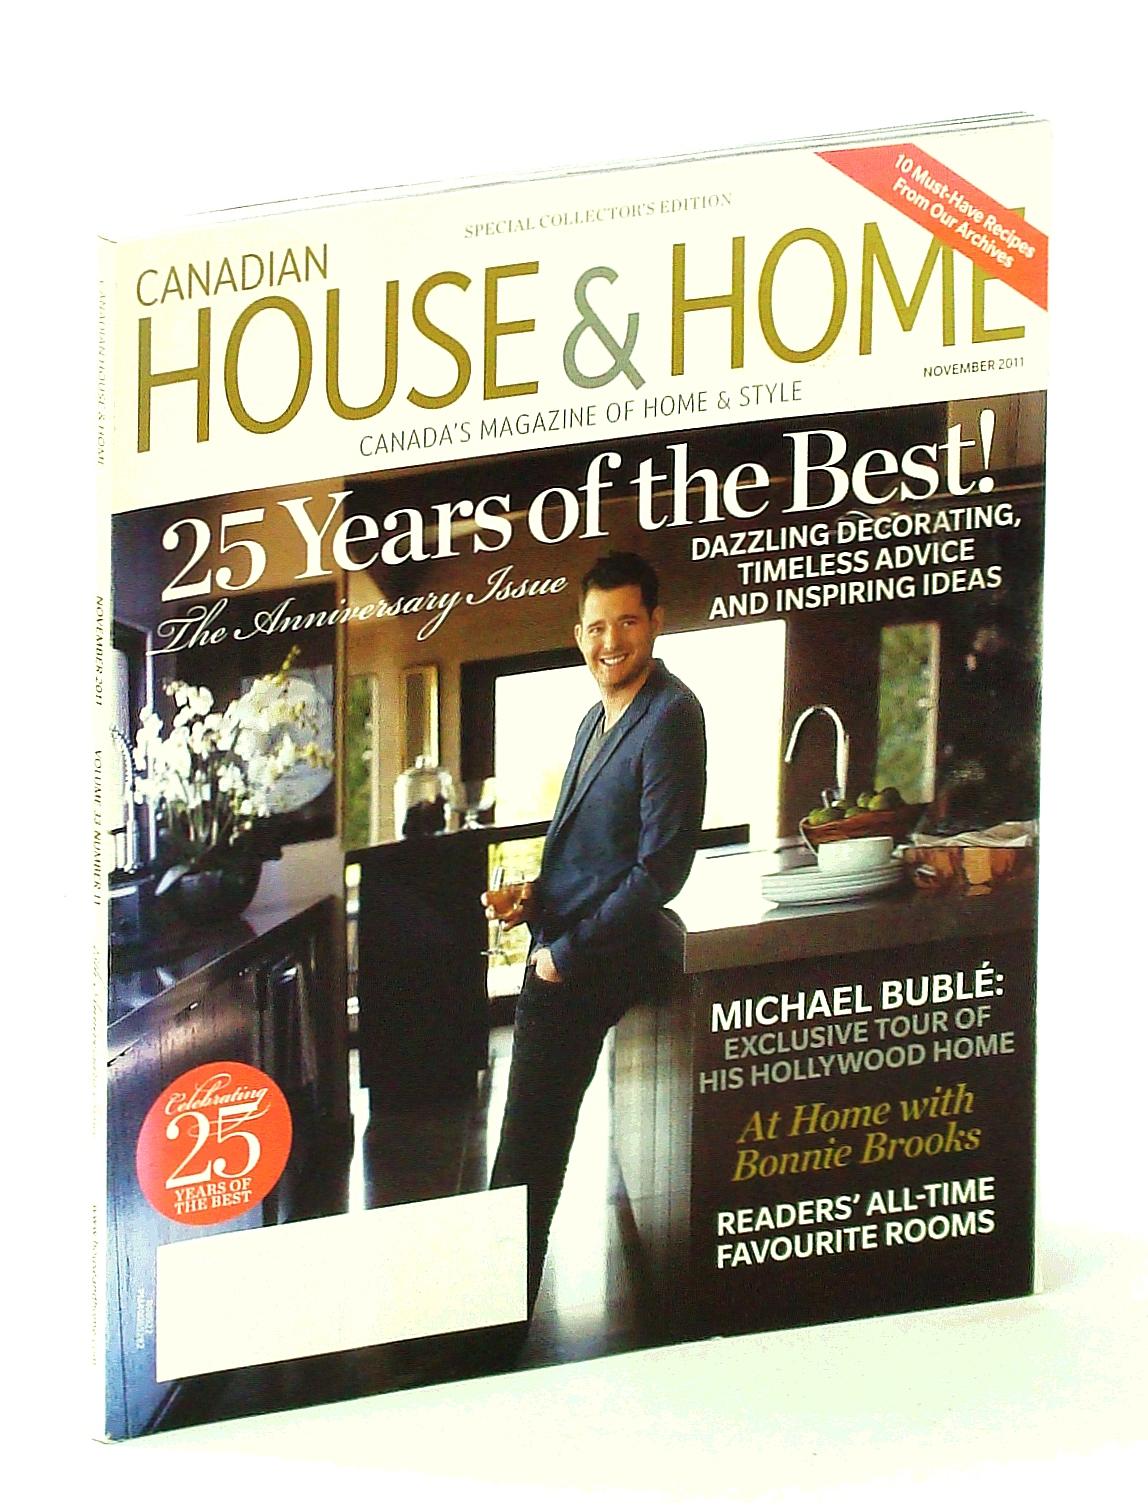 Image for Canadian House & Home - Canada's Magazine of Home & Style, November [Nov.] 2011 - Tour Michael Buble's Hollywood Home